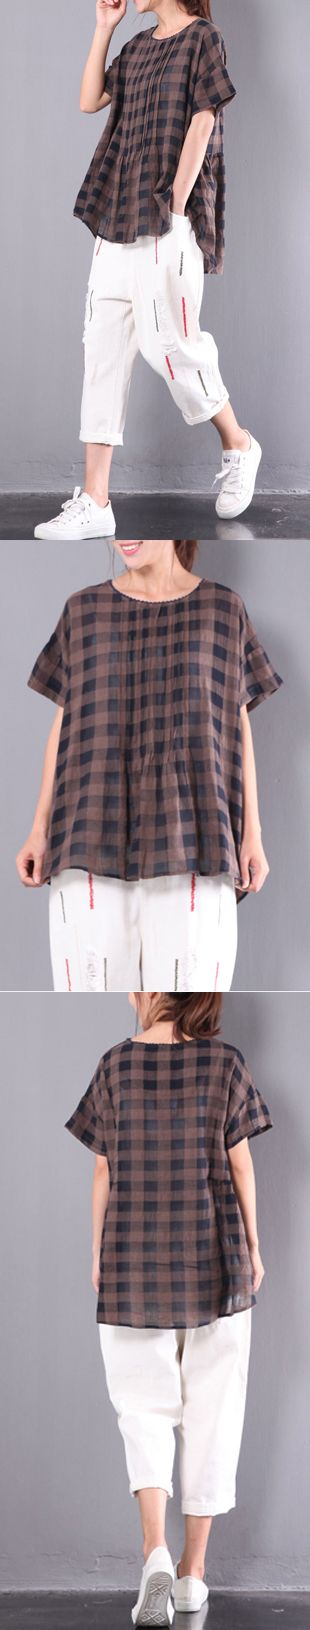 chocolate plaid wrinkled cotton tops plus size casual tops short sleeve t shirt